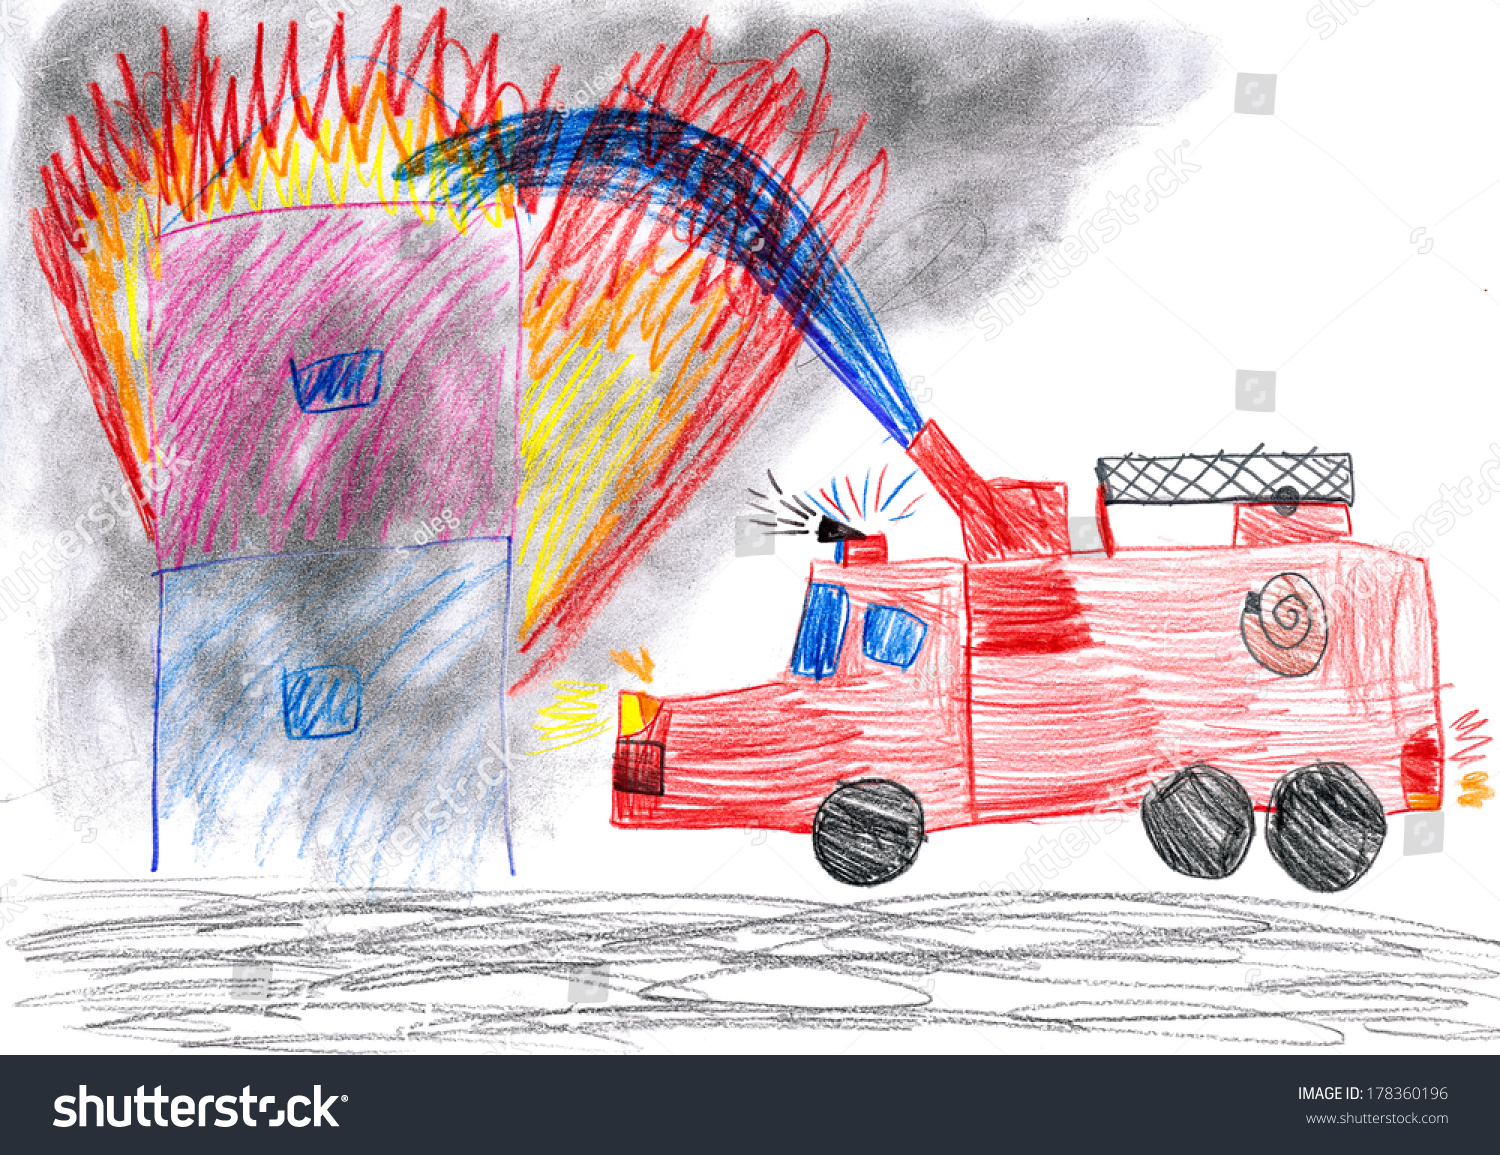 This is a picture of Monster Burning House Drawing